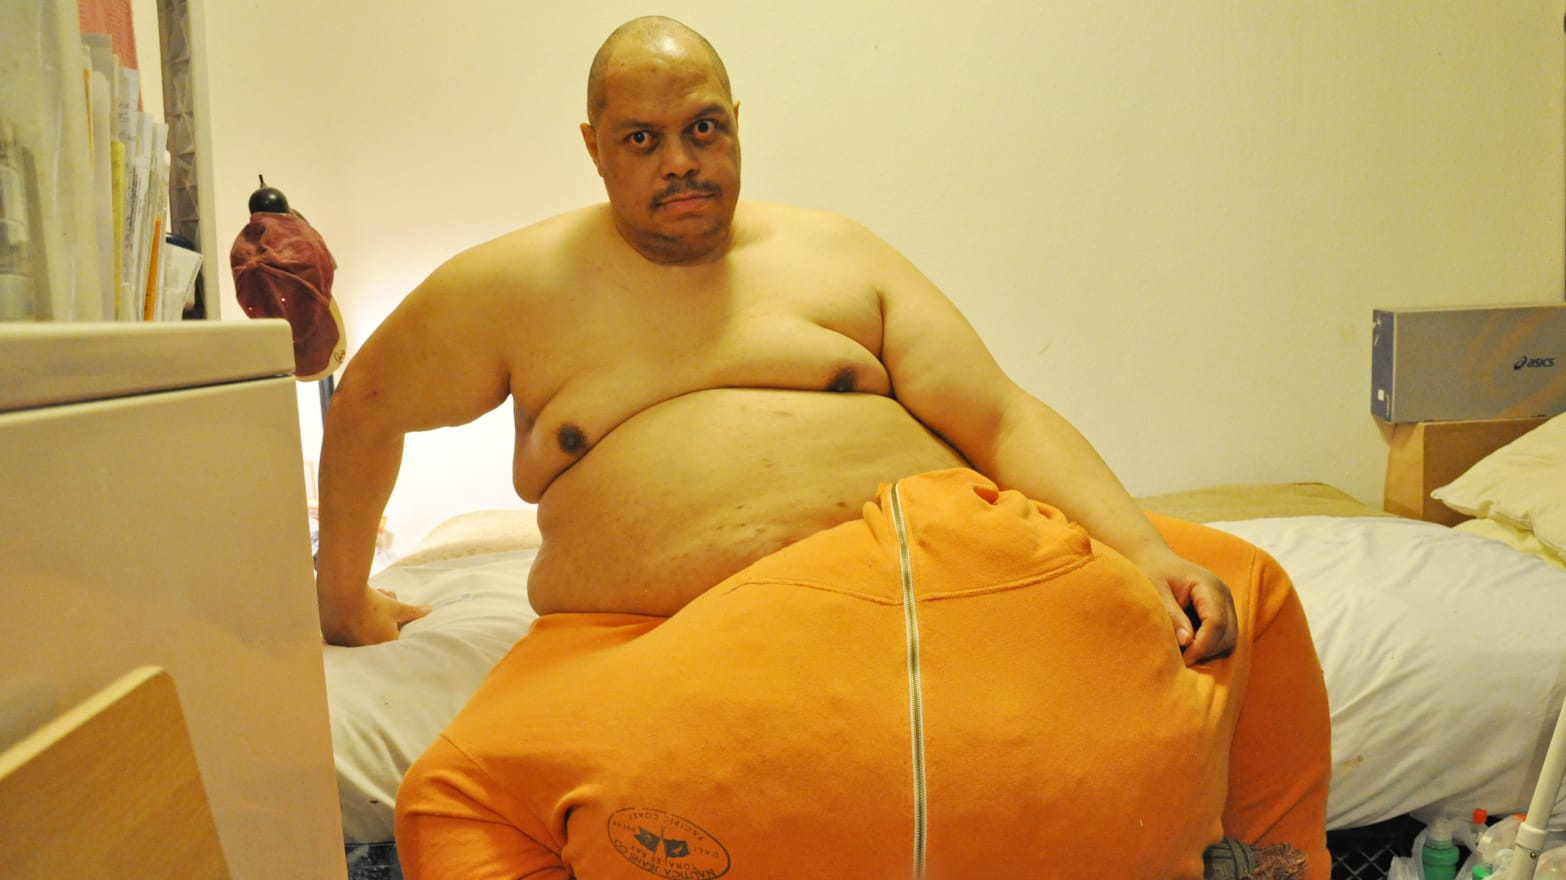 Get Out Tlc Tv Show Full Episodes the man with the 132 lb. scrotum': tlc's lowest show yet?